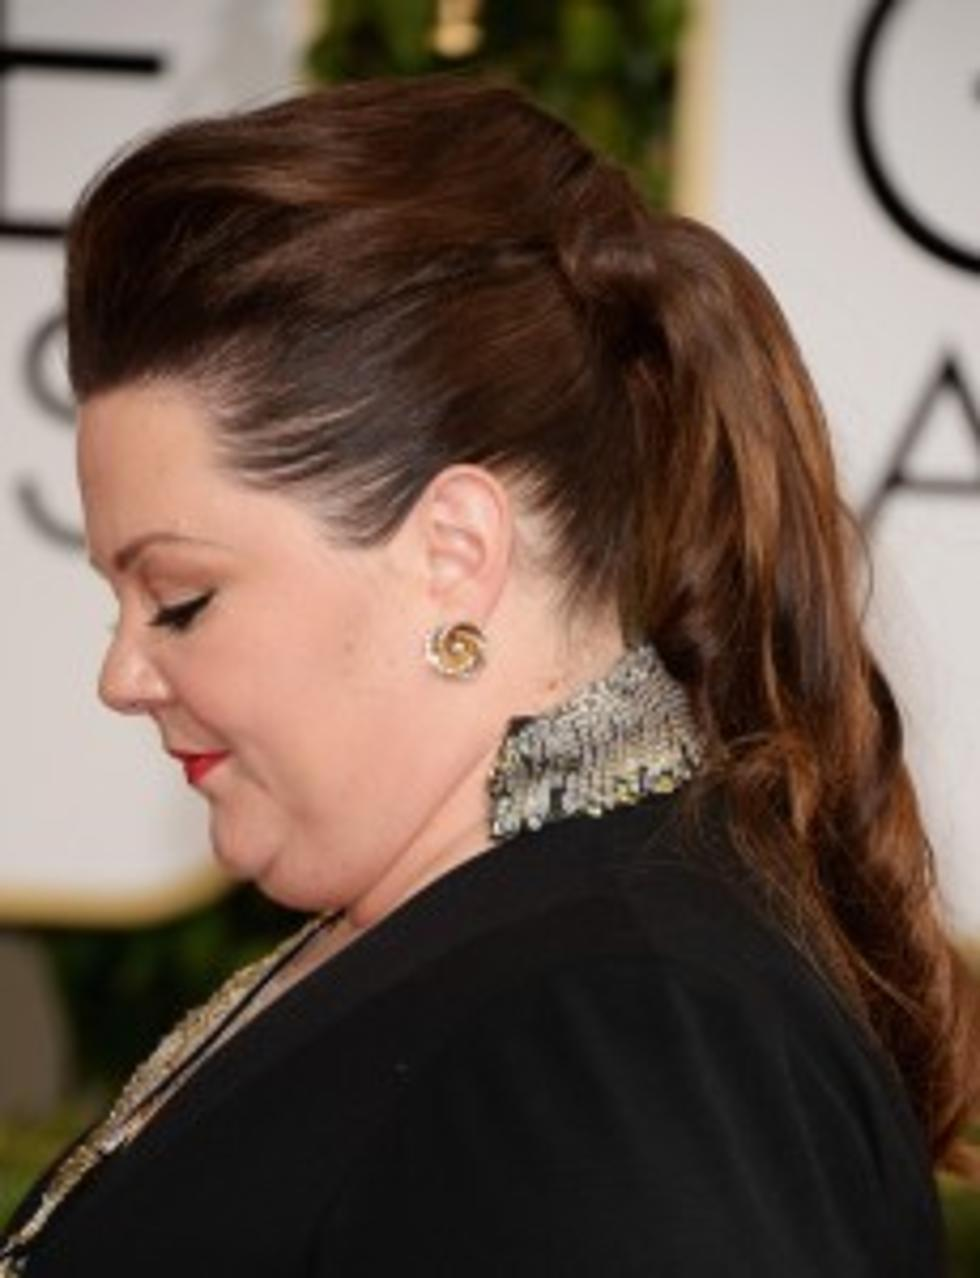 Designers Refuse To Make An Oscar Dress For Melissa Mccarthy